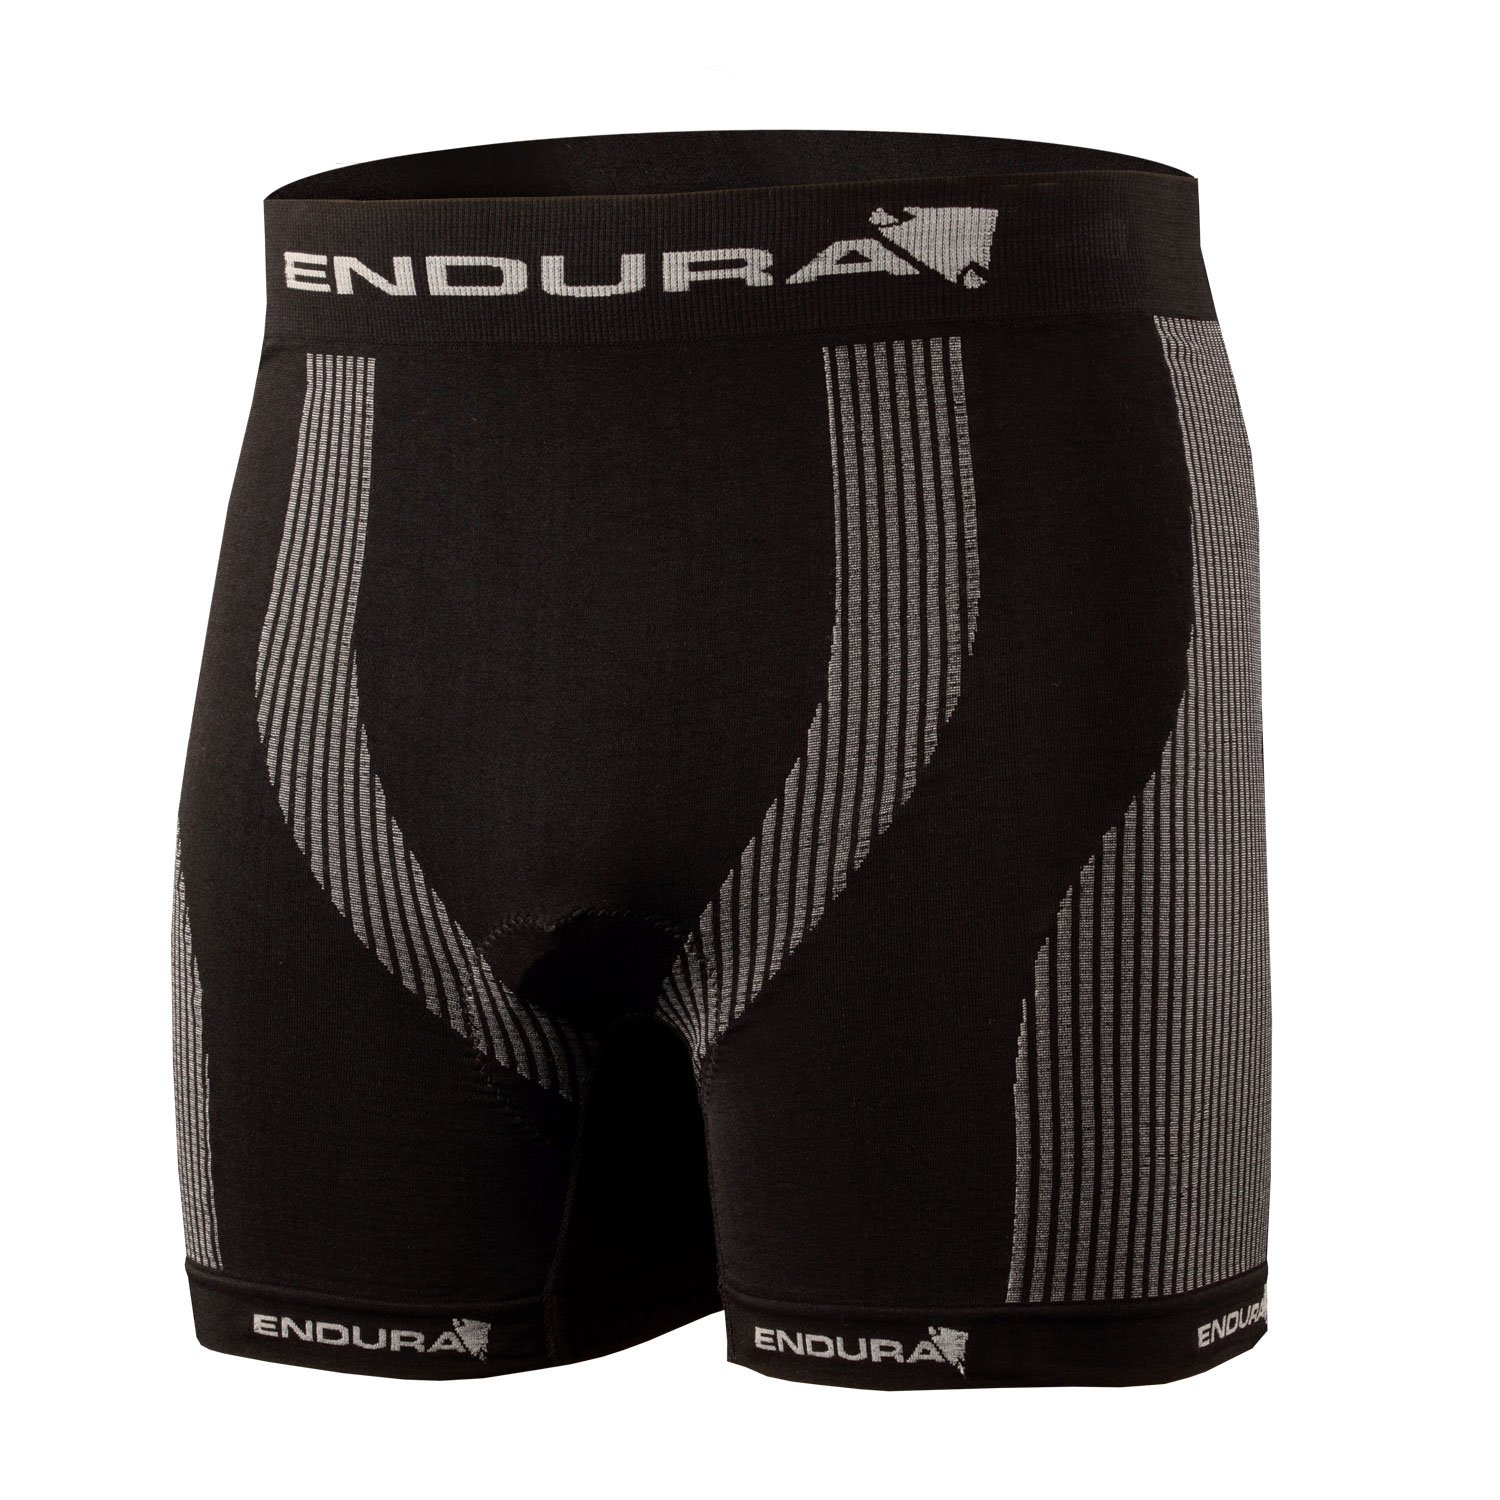 Endura Padded Boxershorts med indlæg sort | Undertøj og svedtøj